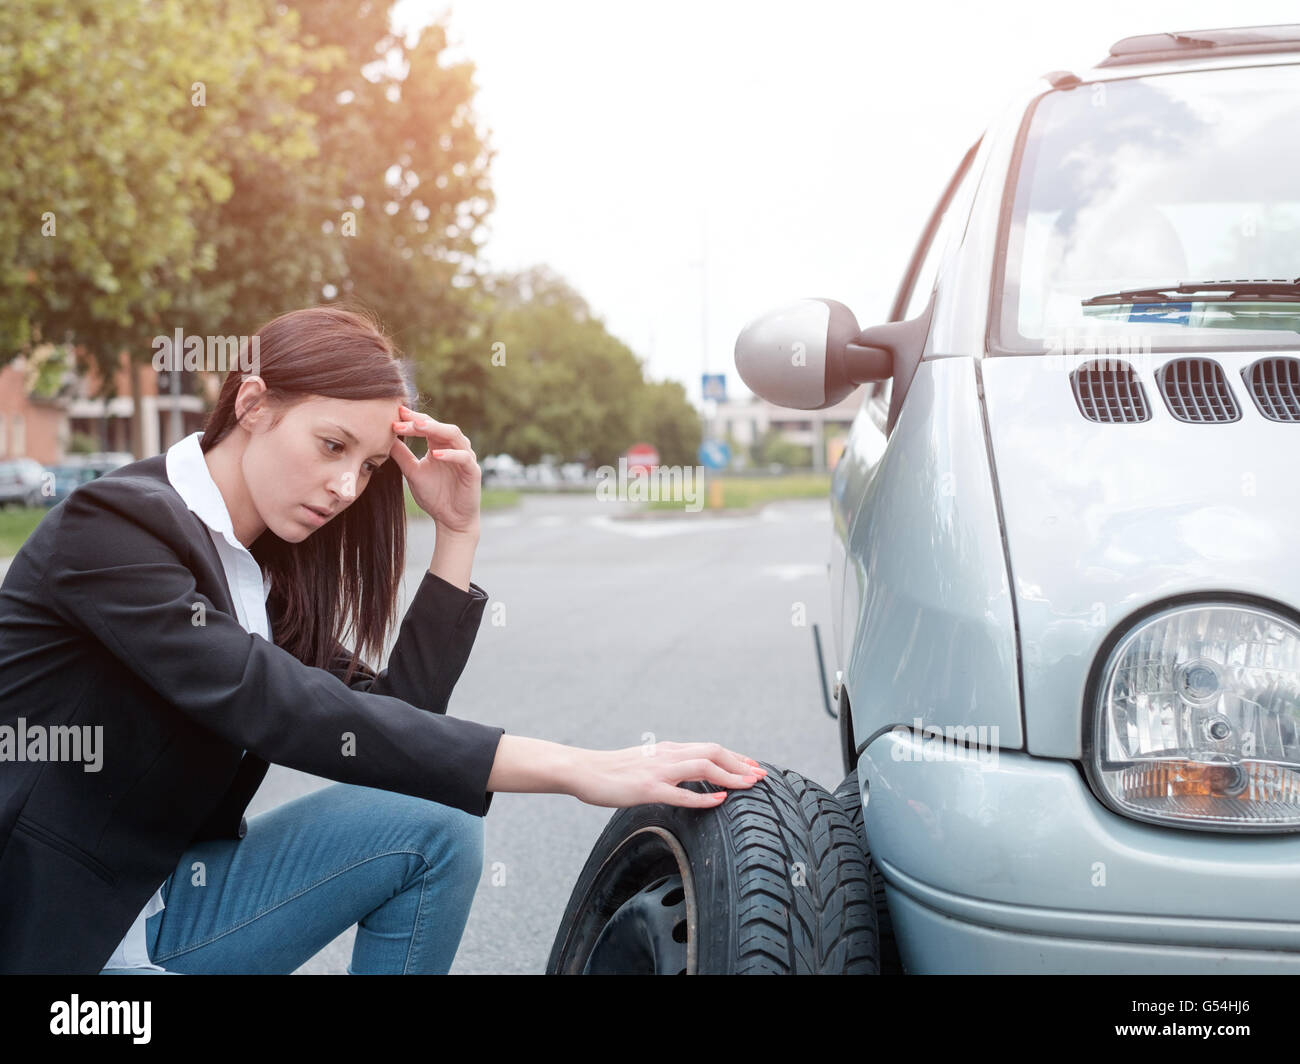 Sad woman after unexpected vehicle breakdown - Stock Image